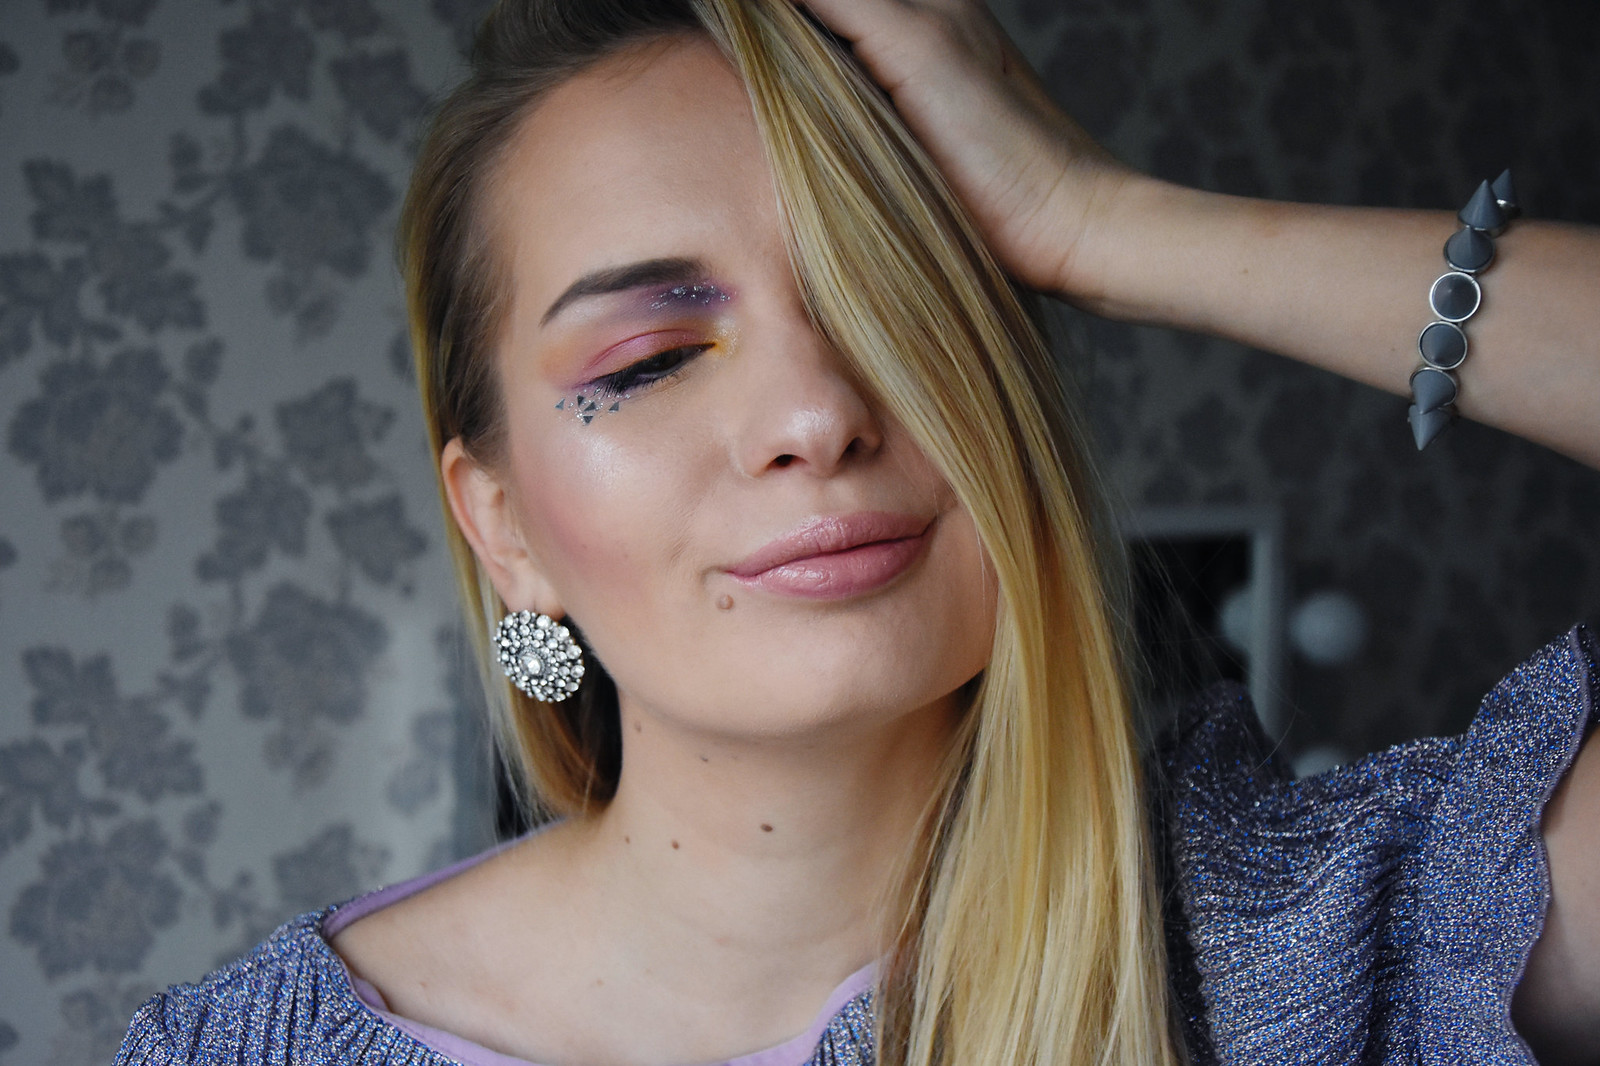 Makeup look with glitter inspiration